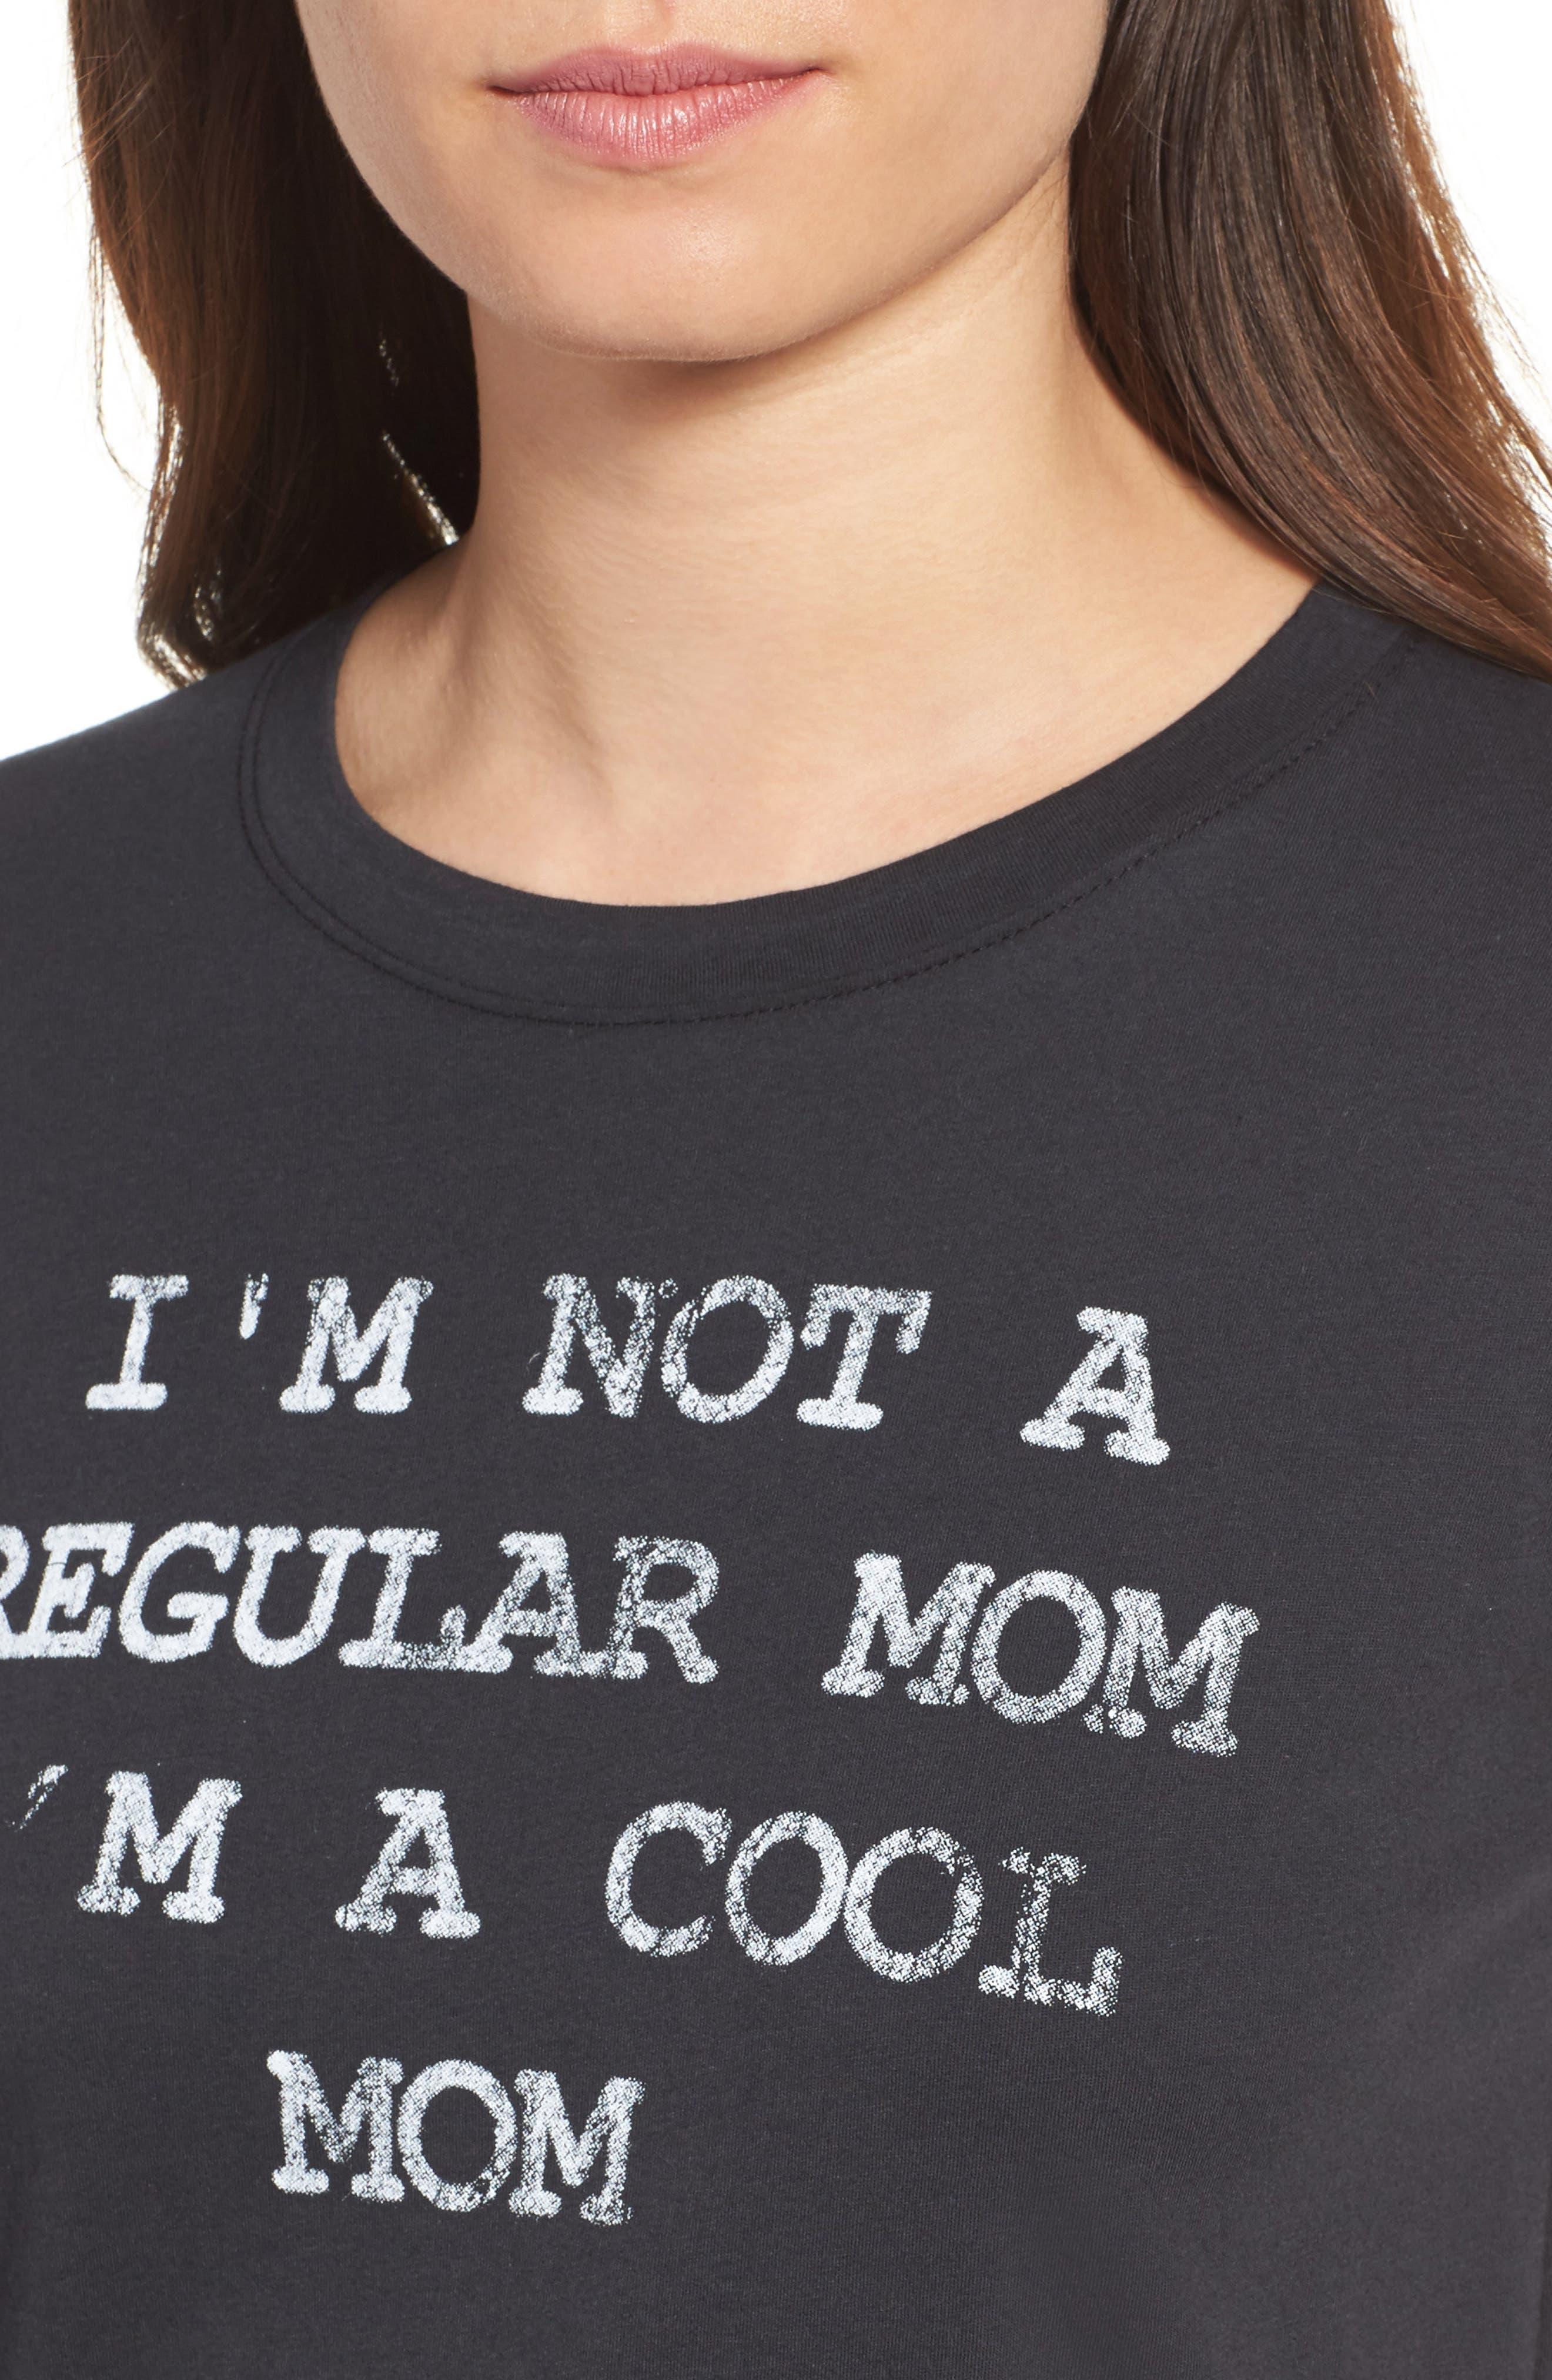 x Mean Girls I'm A Cool Mom Tee,                             Alternate thumbnail 4, color,                             001